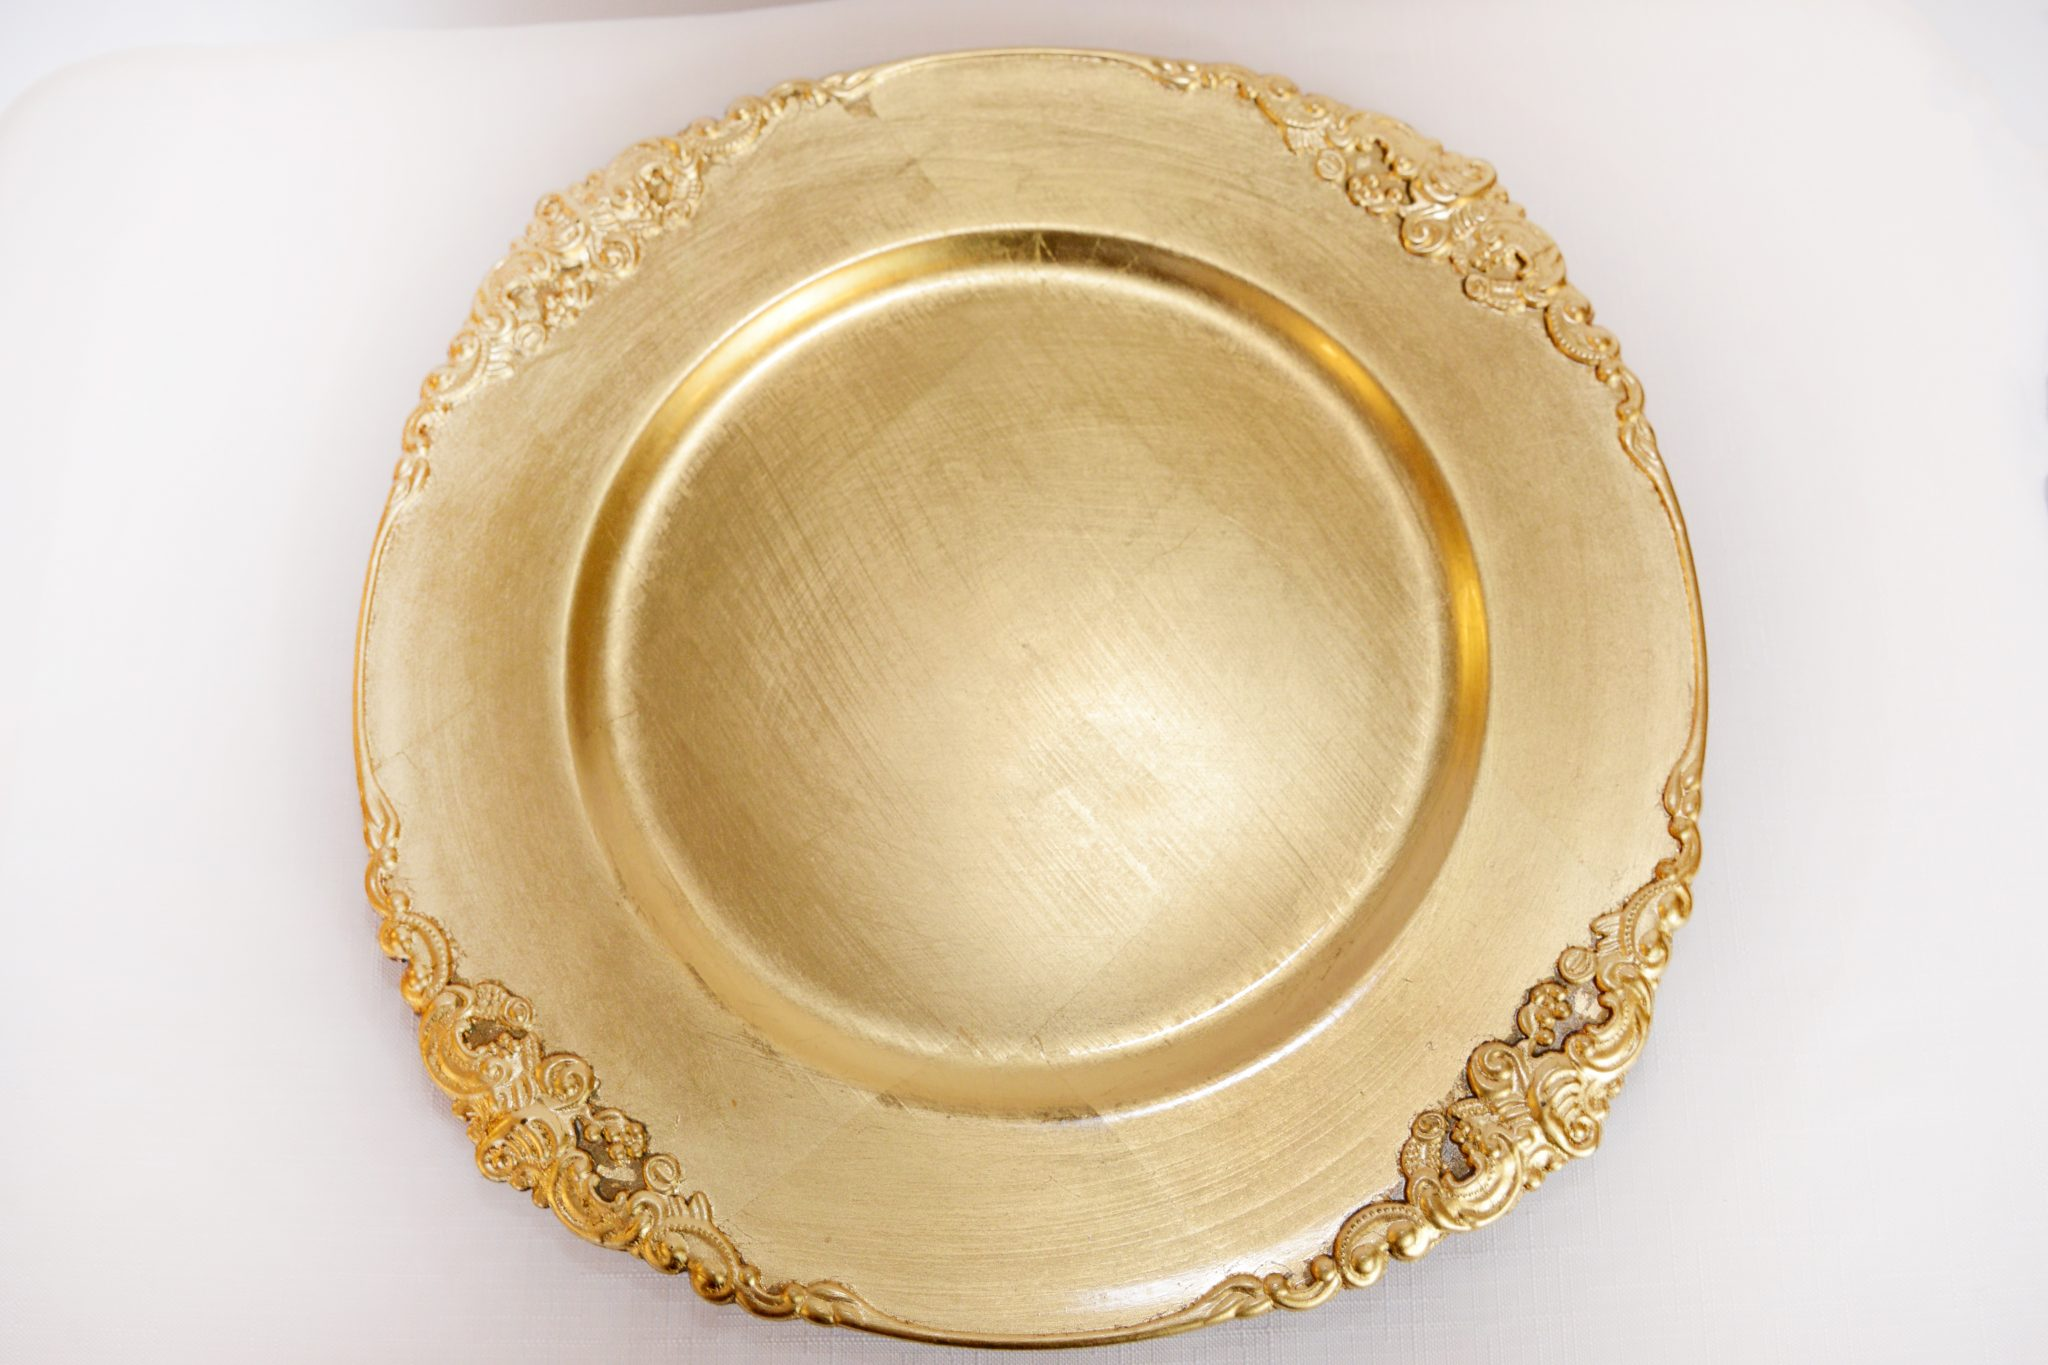 Gold Ornate Charger Plate U2014 Keeping It Vintage